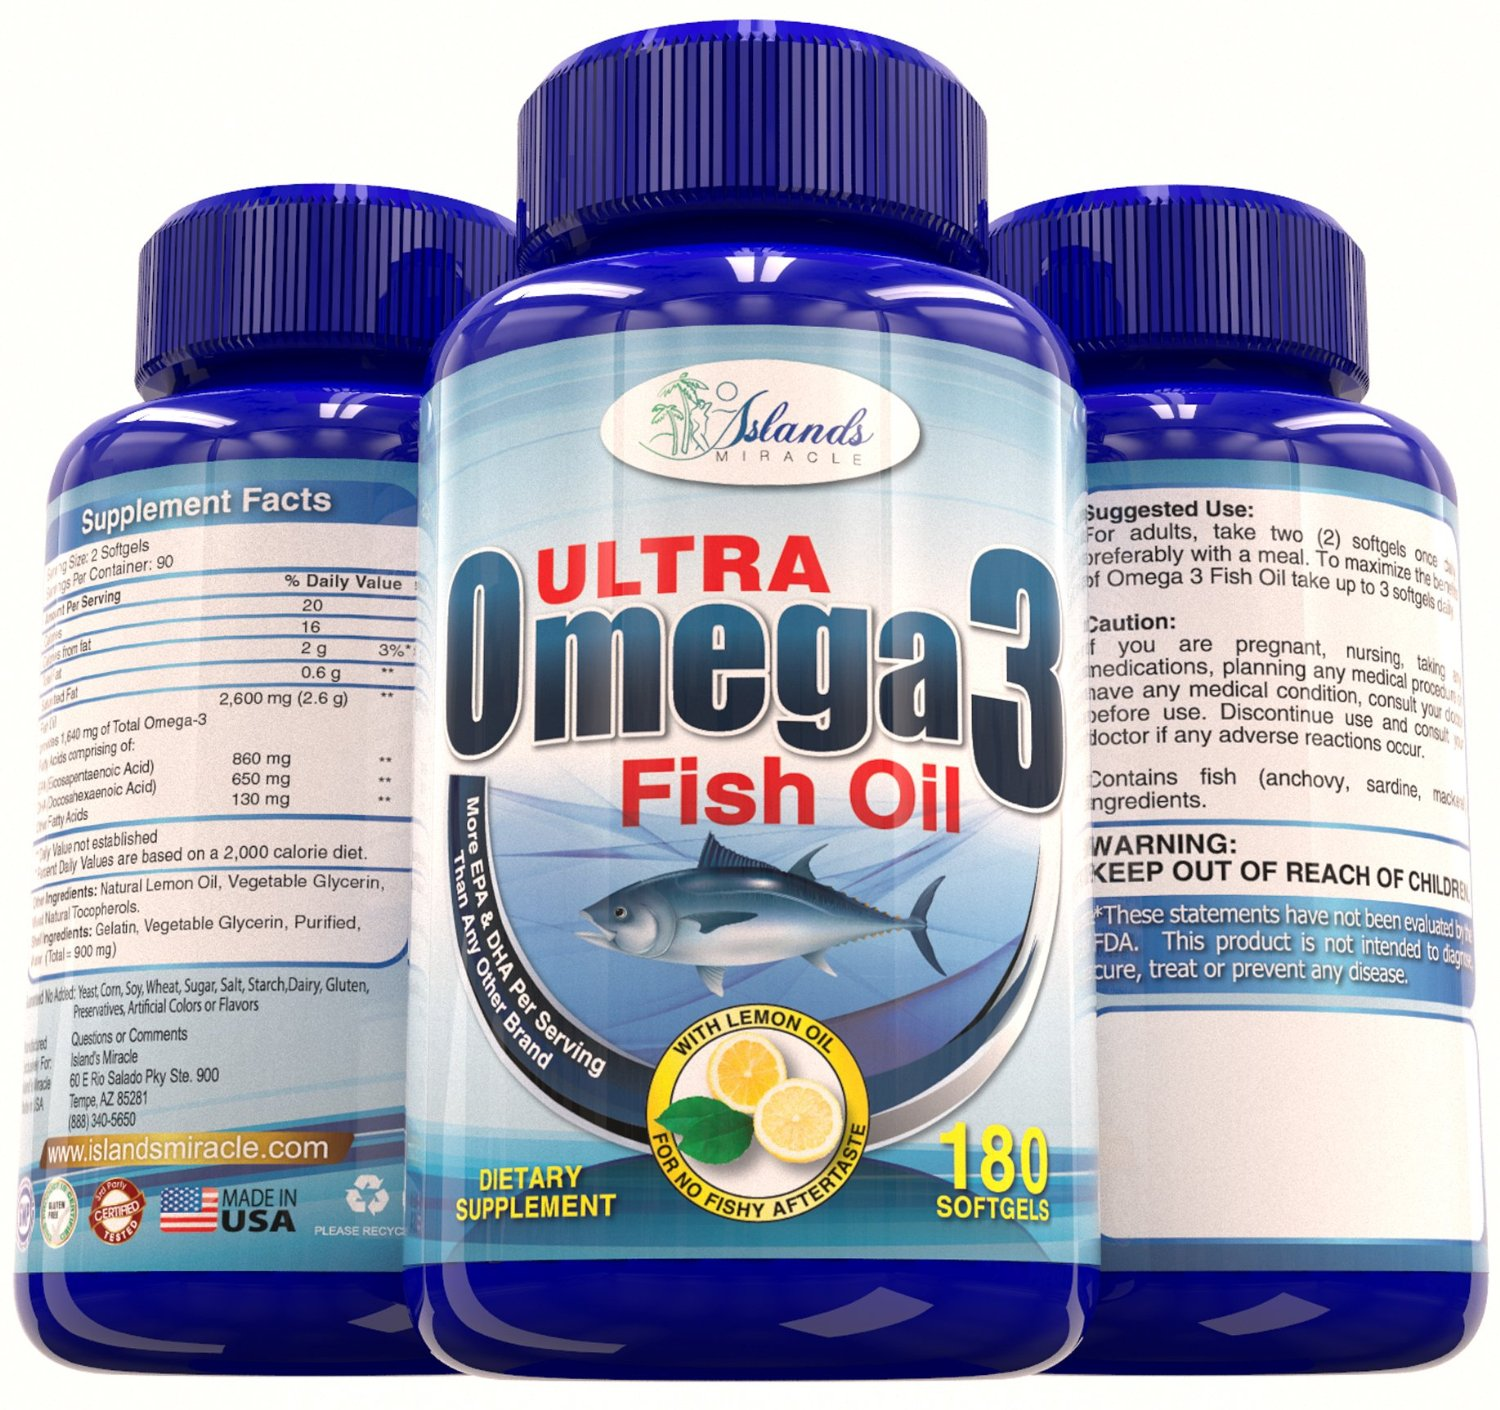 Island s miracle ultra omega 3 fish oil review giveaway for Omega 3 fish oil reviews